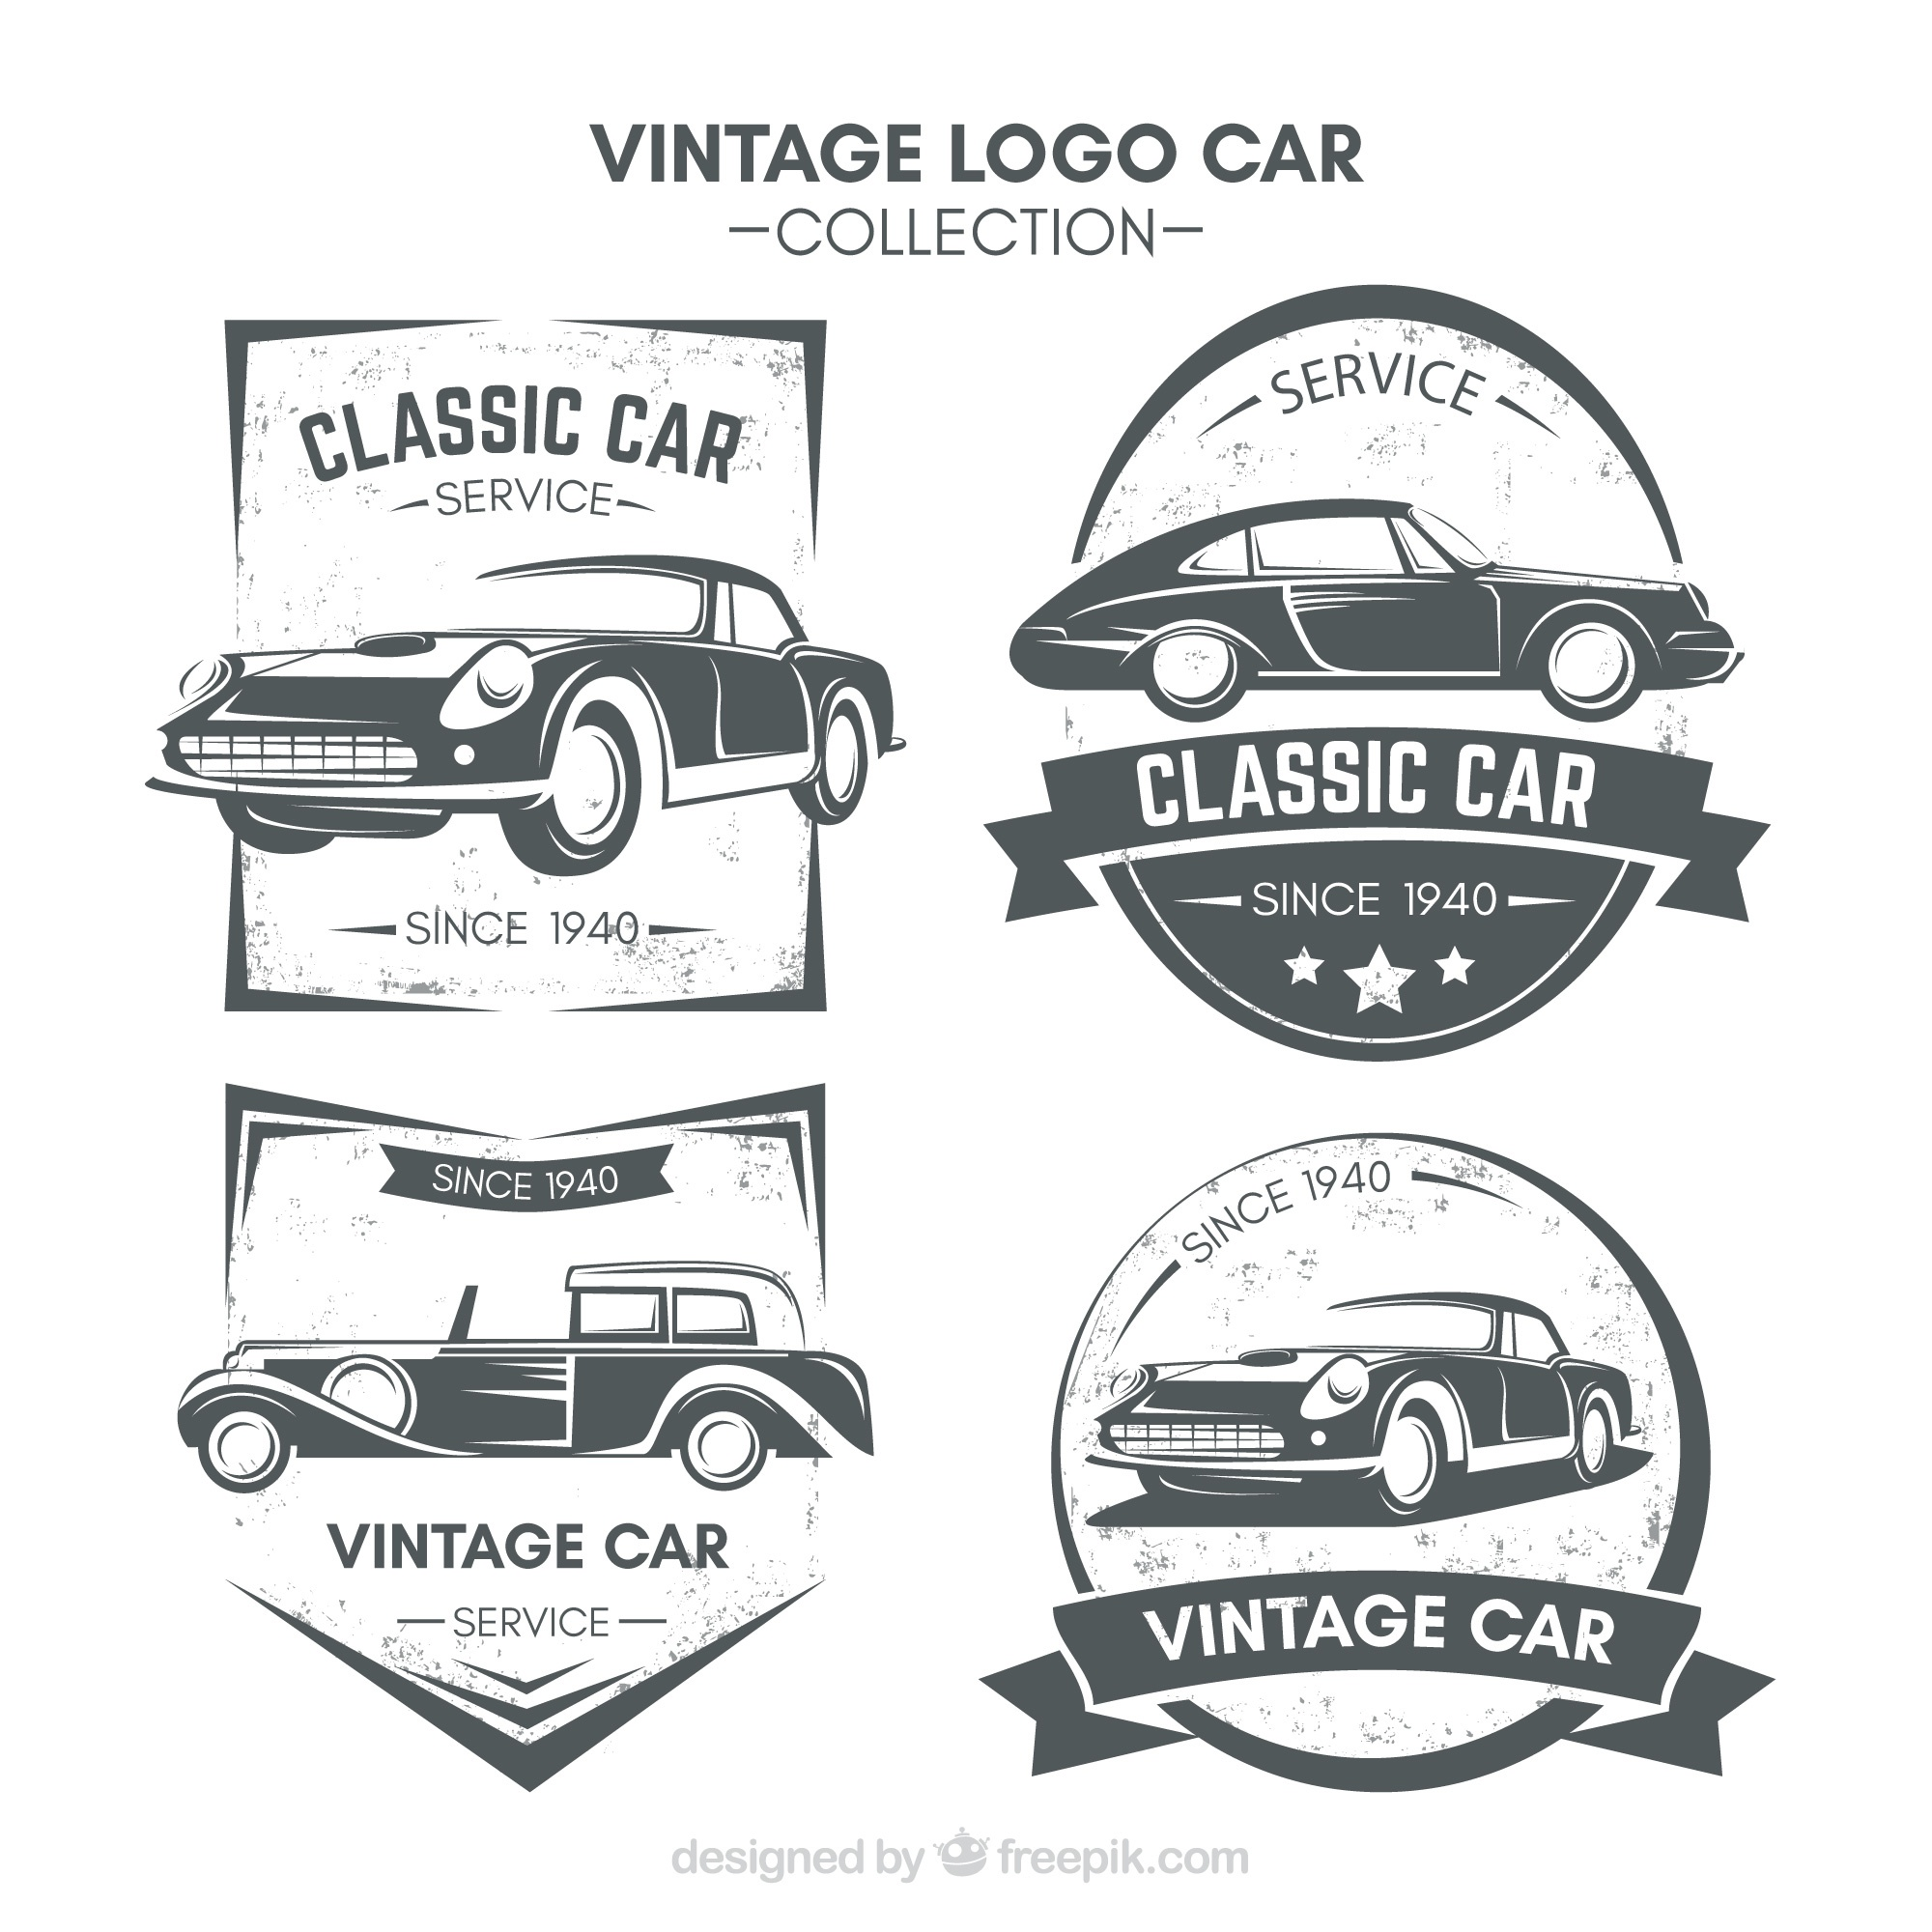 Fantastic logos with vintage cars